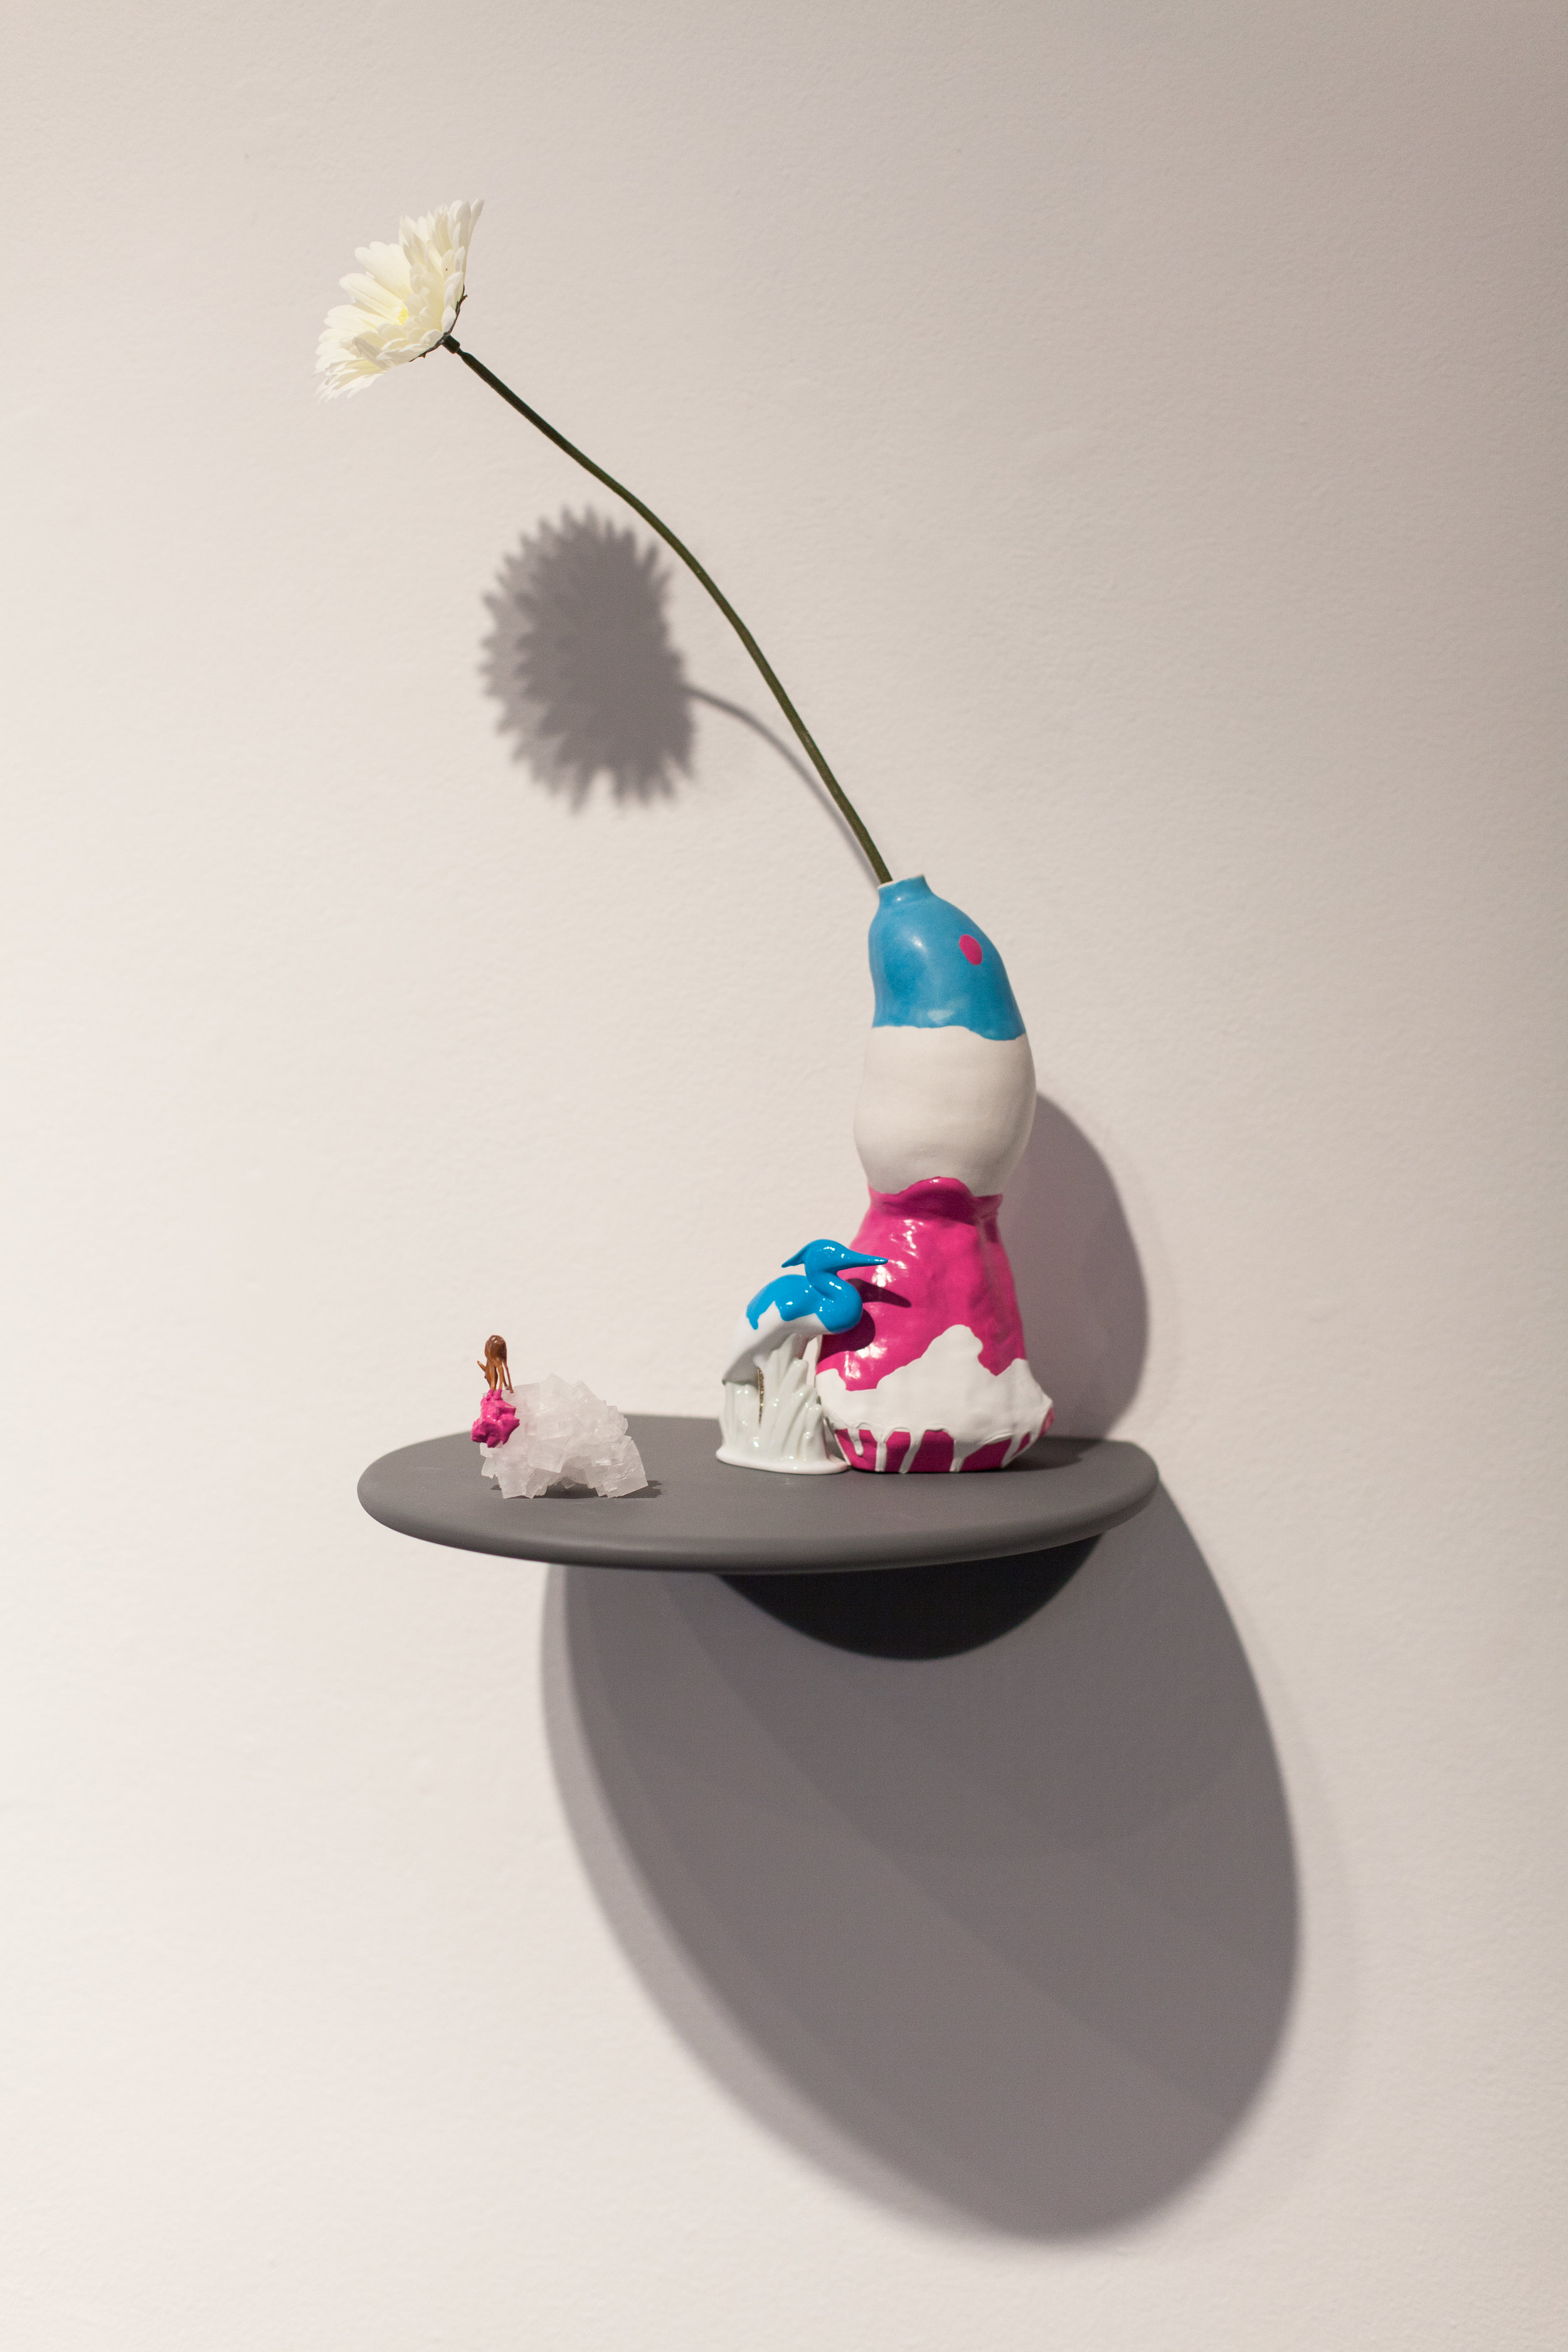 The Spring Before This One, Collection #2   Wood shelf, porcelain bird, salt crystal with plastic animal, porcelain vase and flower. 21 x 12 x 18 inches  2013